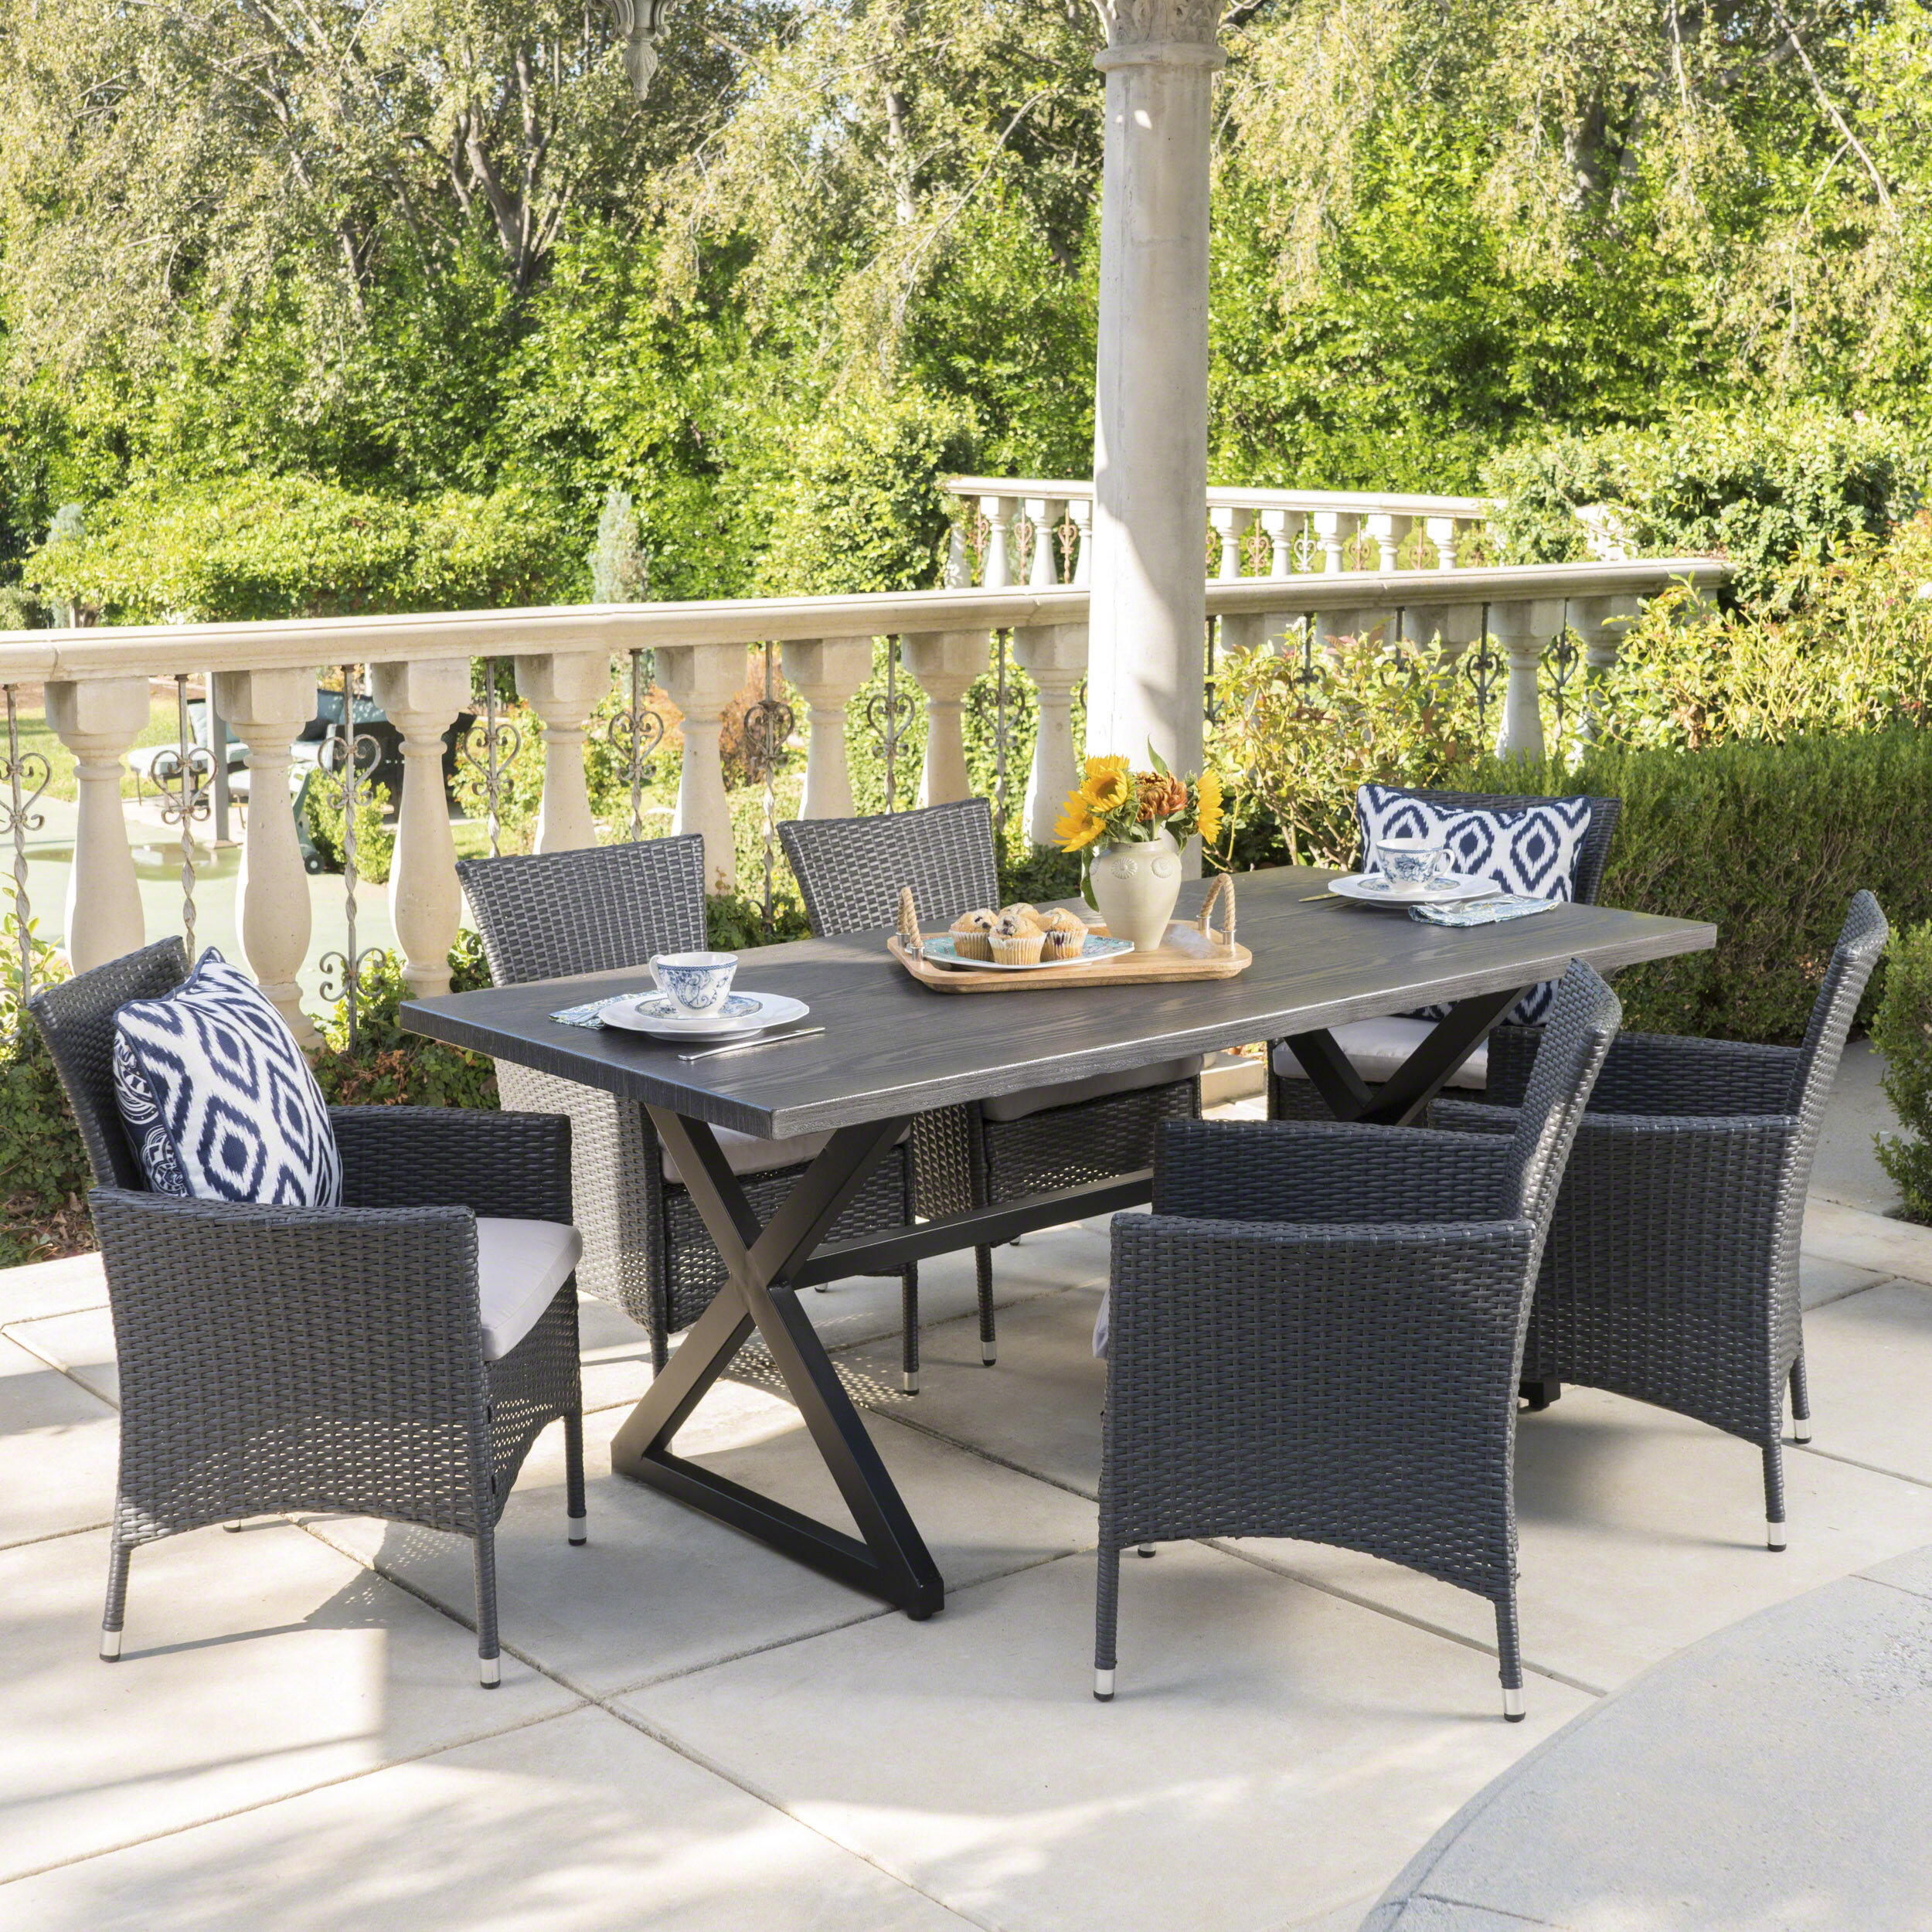 Breakwater Bay Nevis 7 Piece Dining Set With Cushions Reviews Wayfair Ca